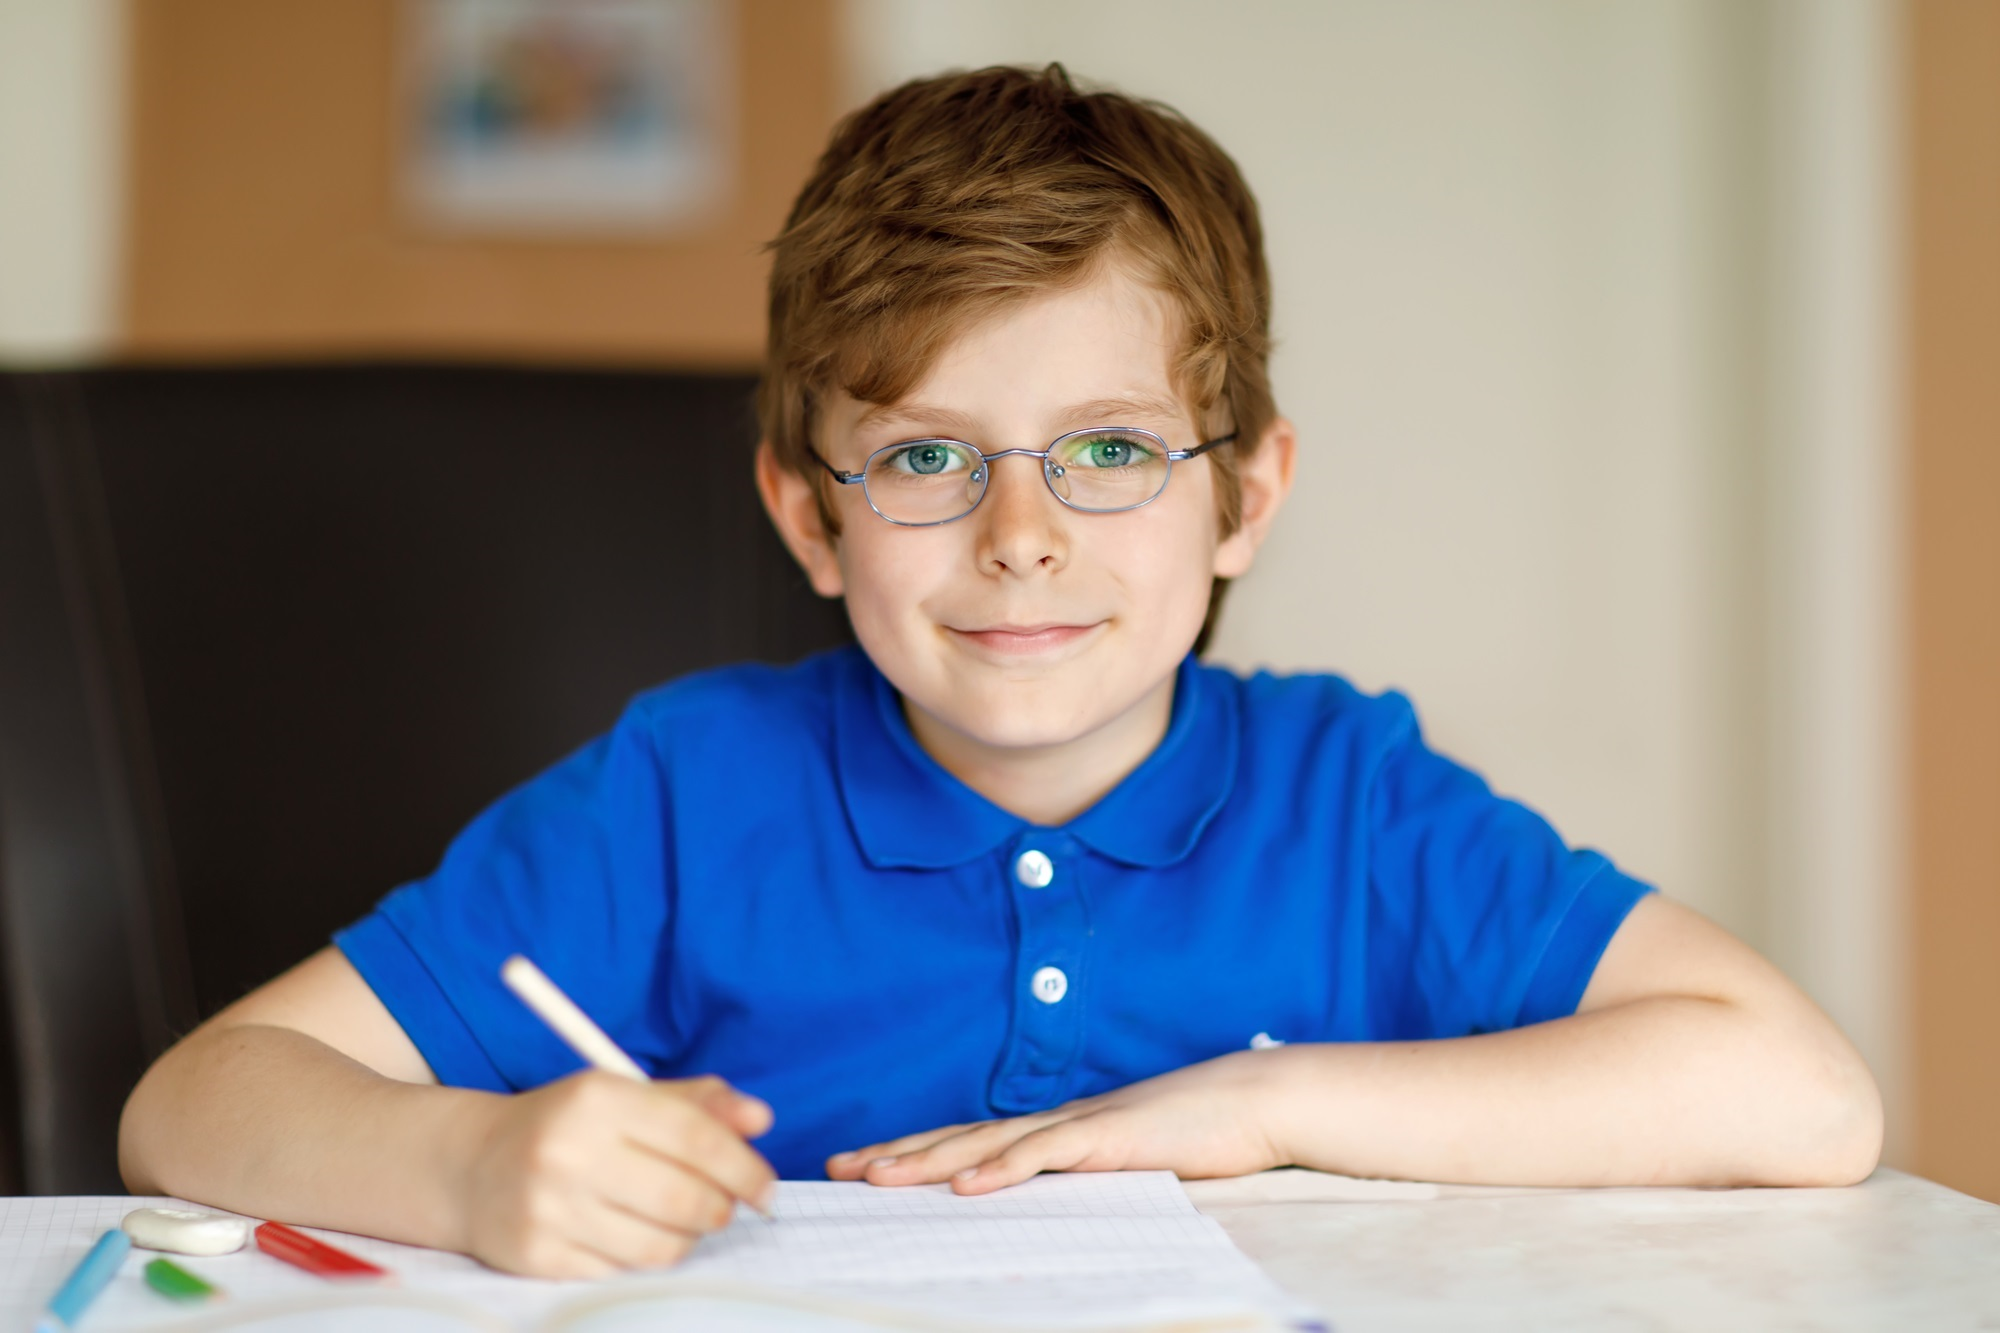 299d75c4e7d How a Back-to-School Eye Exam Helps Your Child Succeed - Griebenow ...